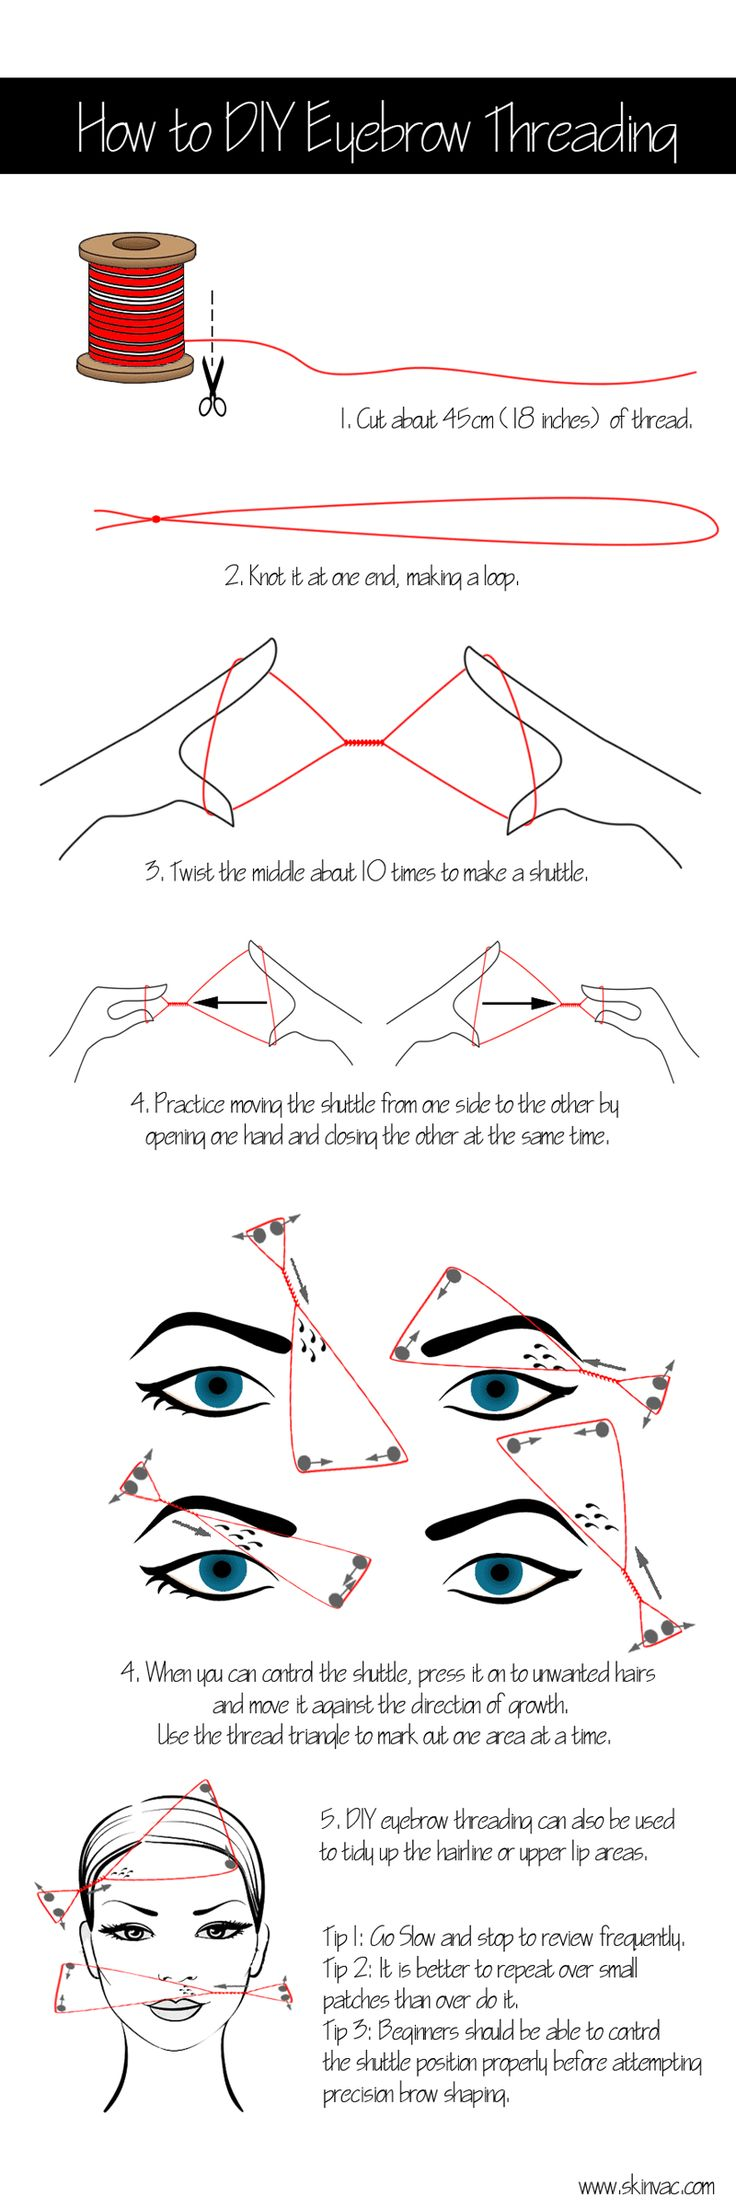 How to Thread your Eyebrows!